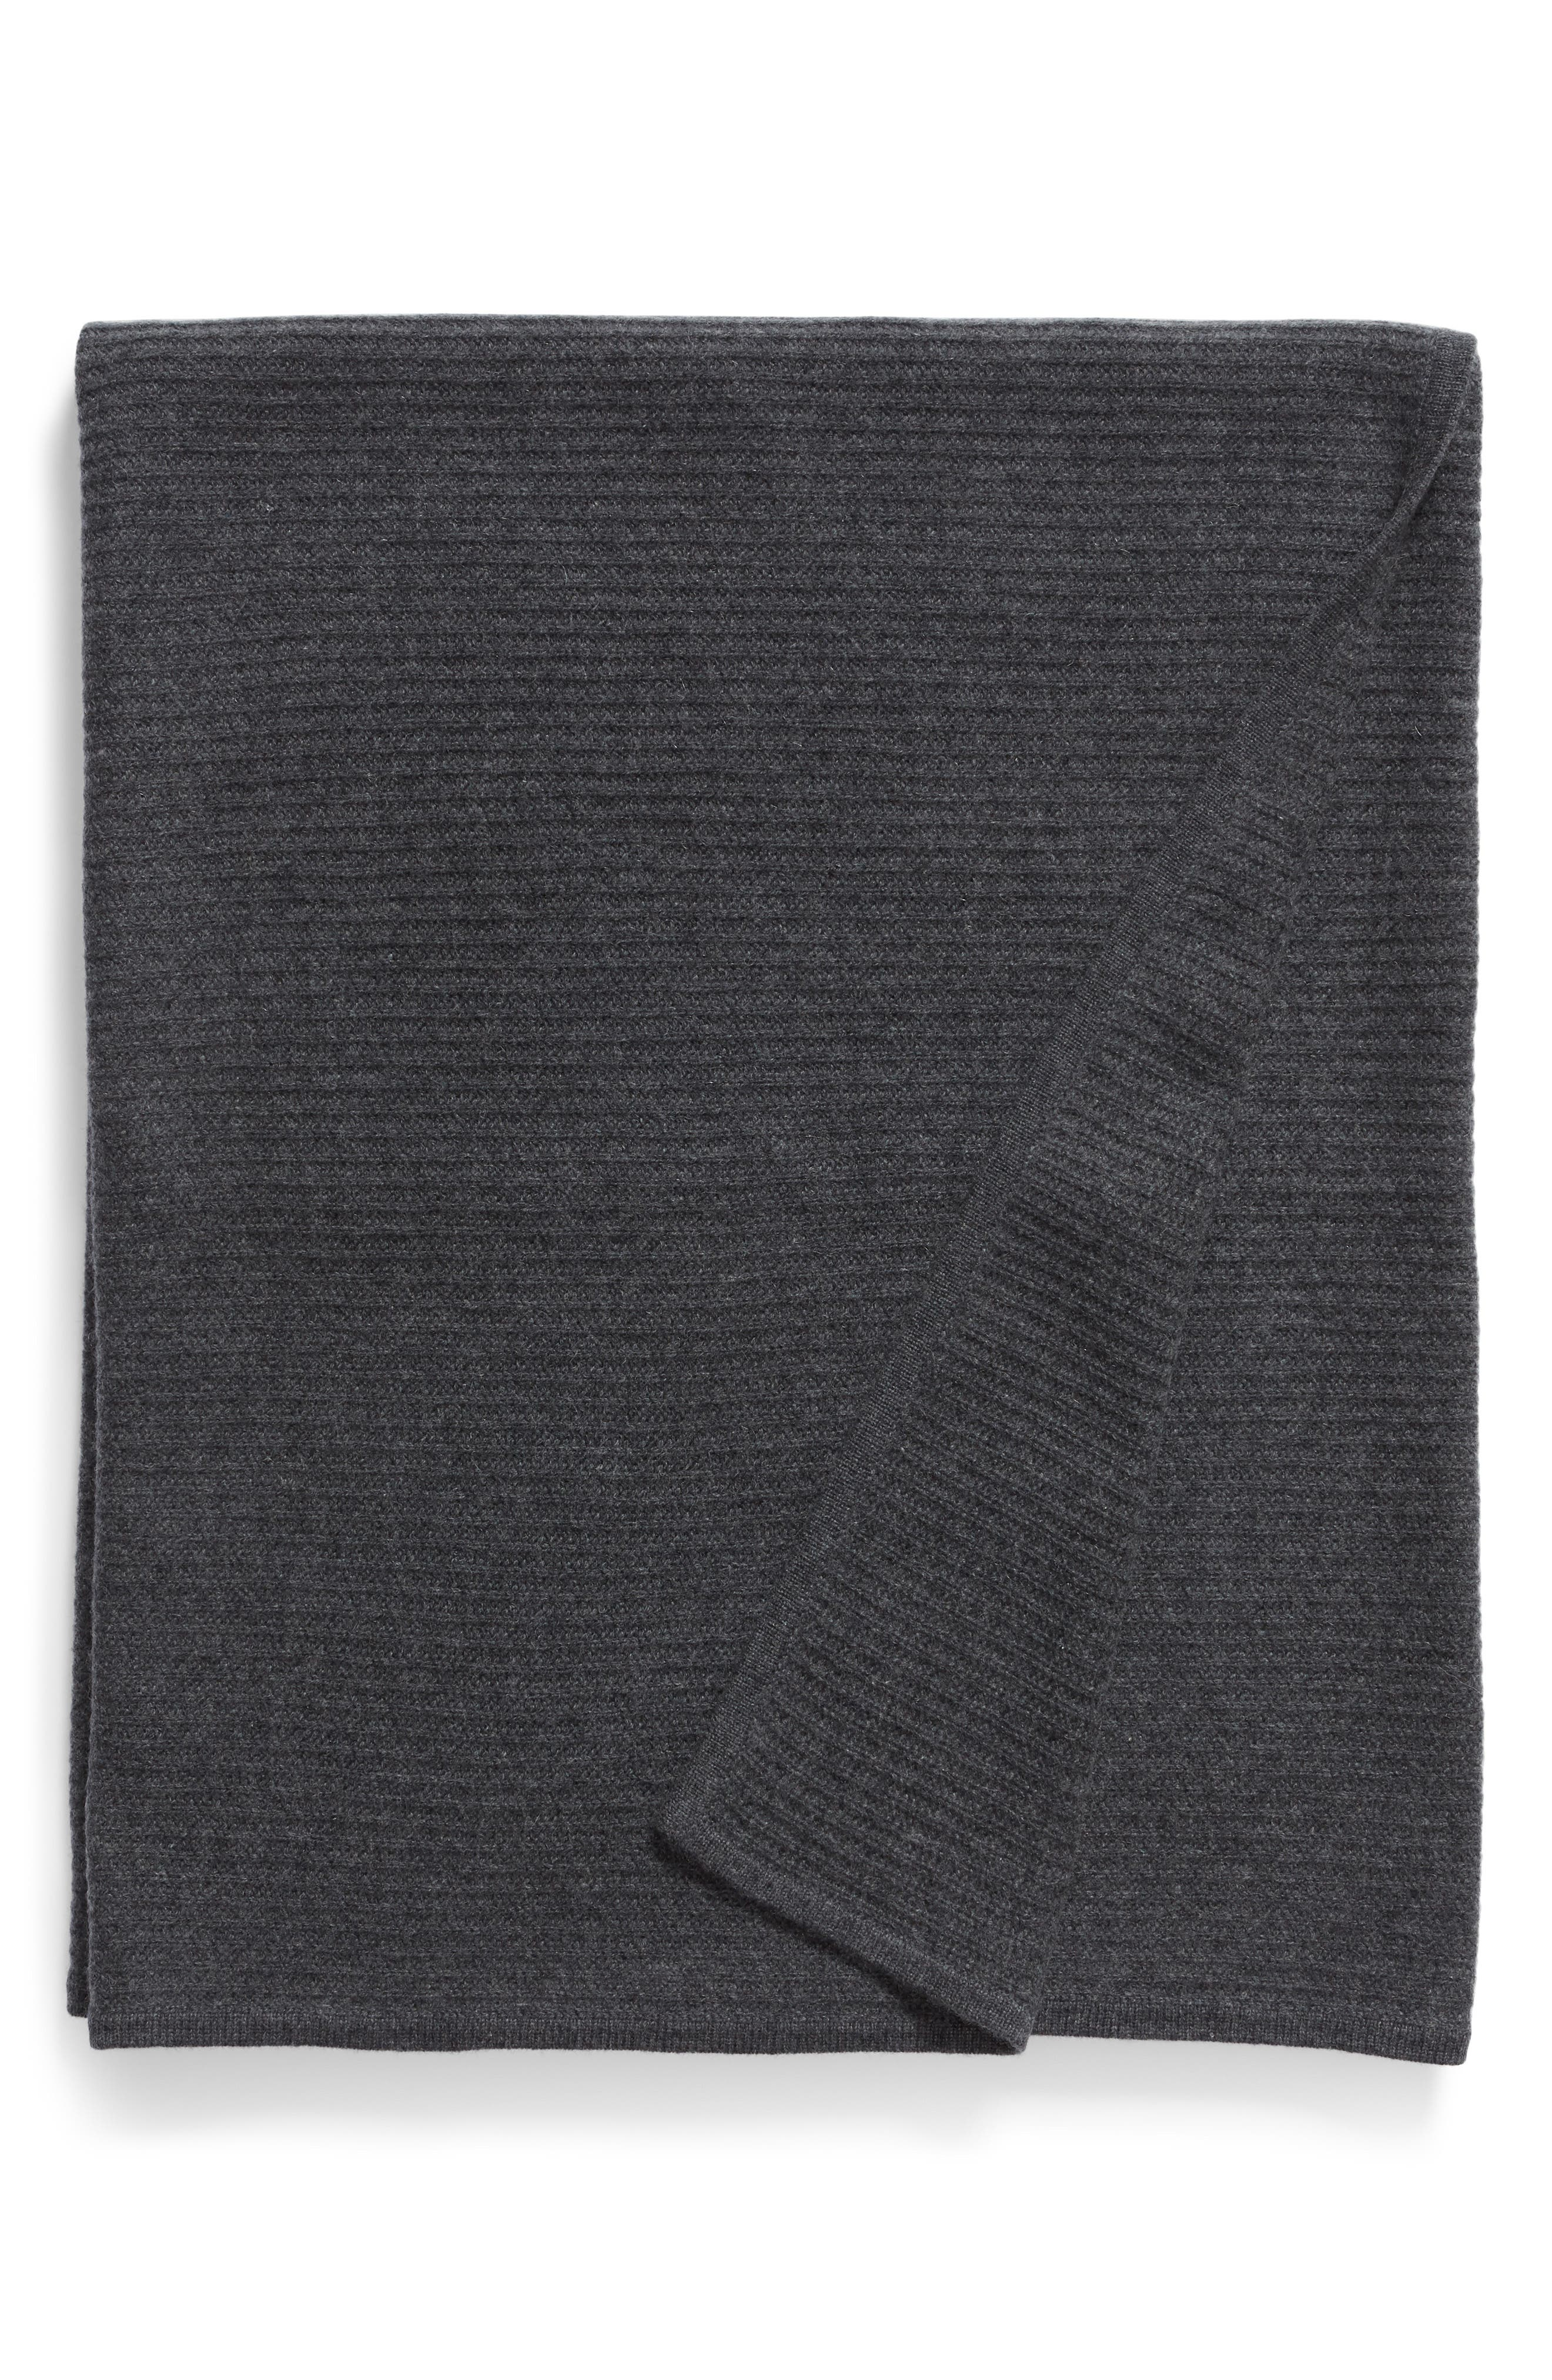 Ribbed Cashmere Throw,                             Main thumbnail 1, color,                             CHARCOAL HEATHER